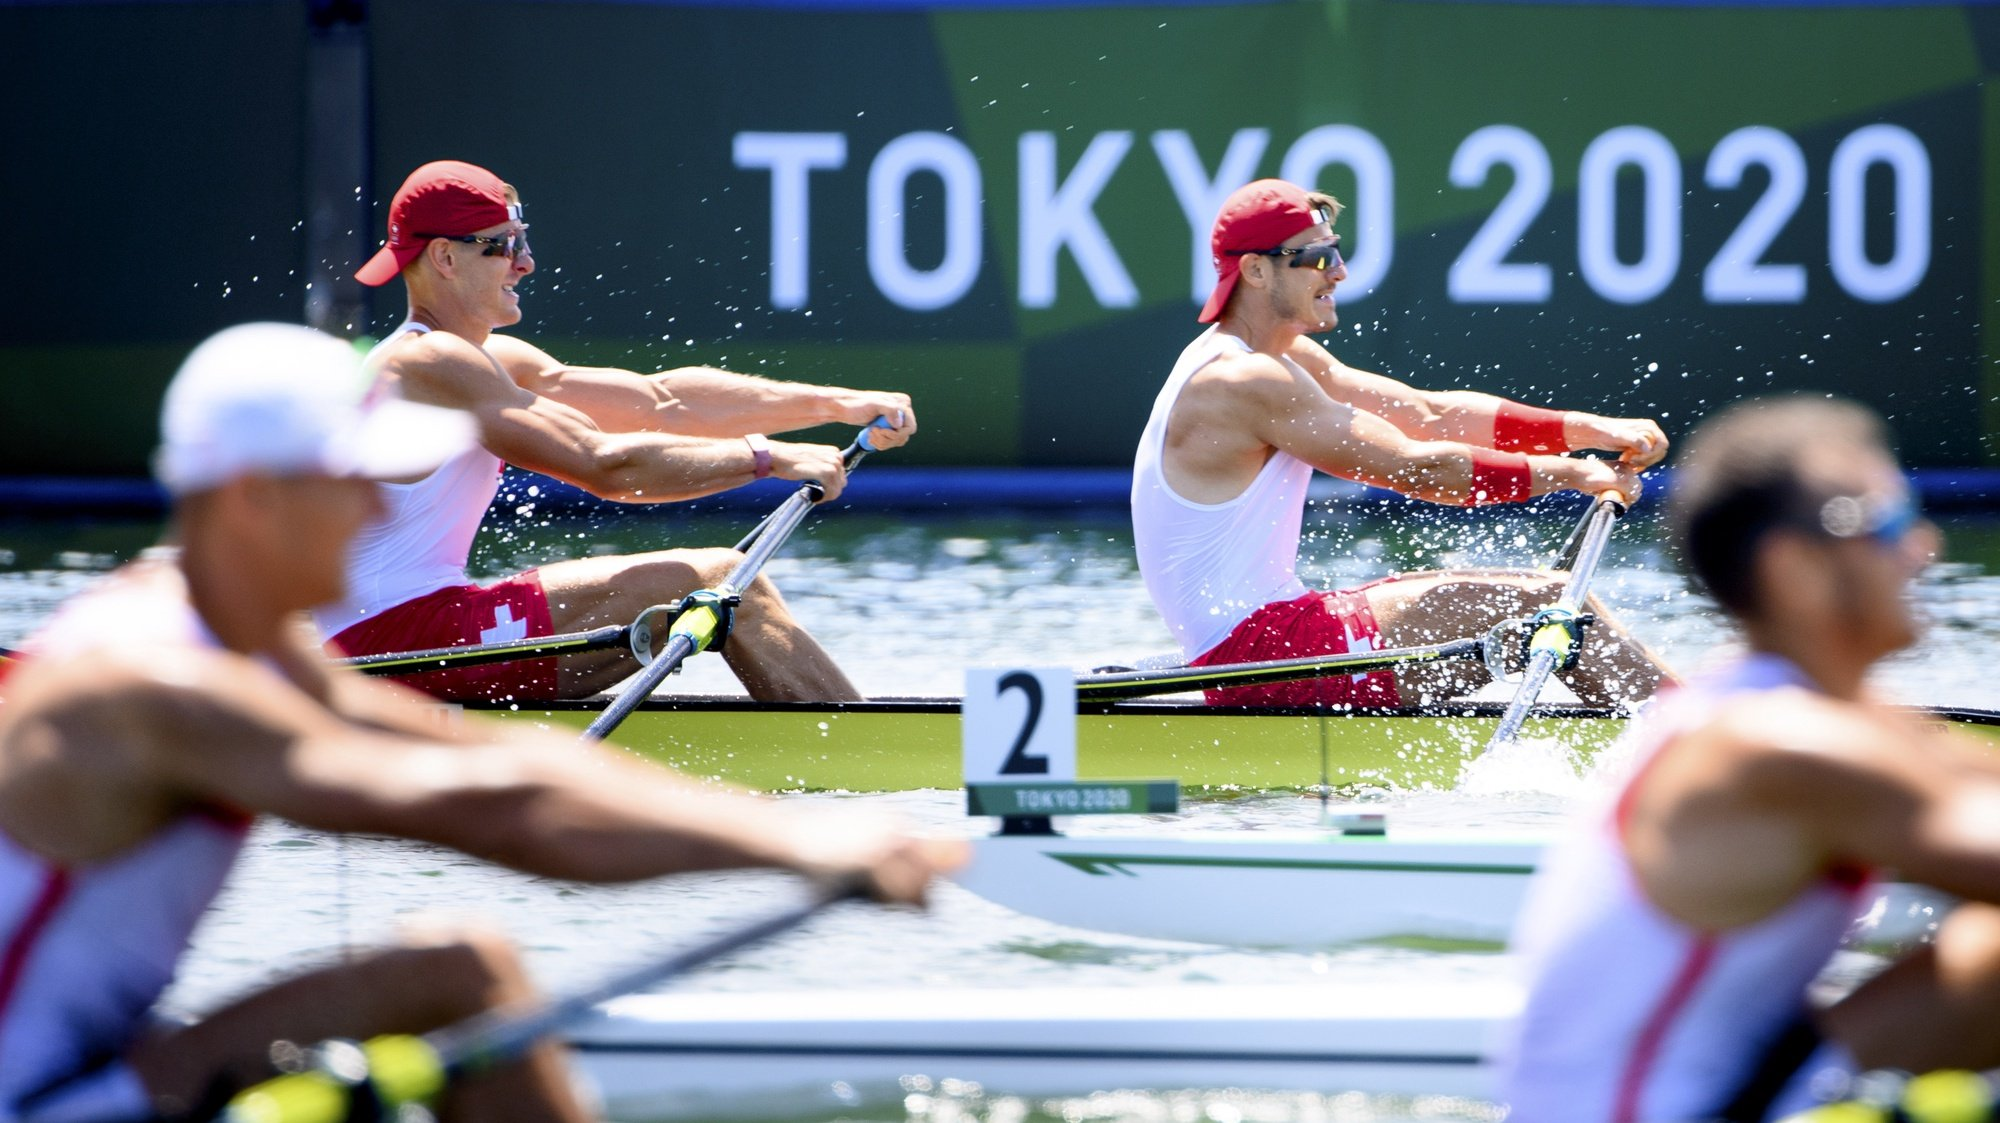 epaselect epa09359026 Swiss rowers Barnabe Delarze and Roman Roeoesli compete in the men's rowing double sculls heat at the 2020 Tokyo Summer Olympics in Tokyo, Japan, 23 July 2021.  EPA/LAURENT GILLIERON EDITORIAL USE ONLY